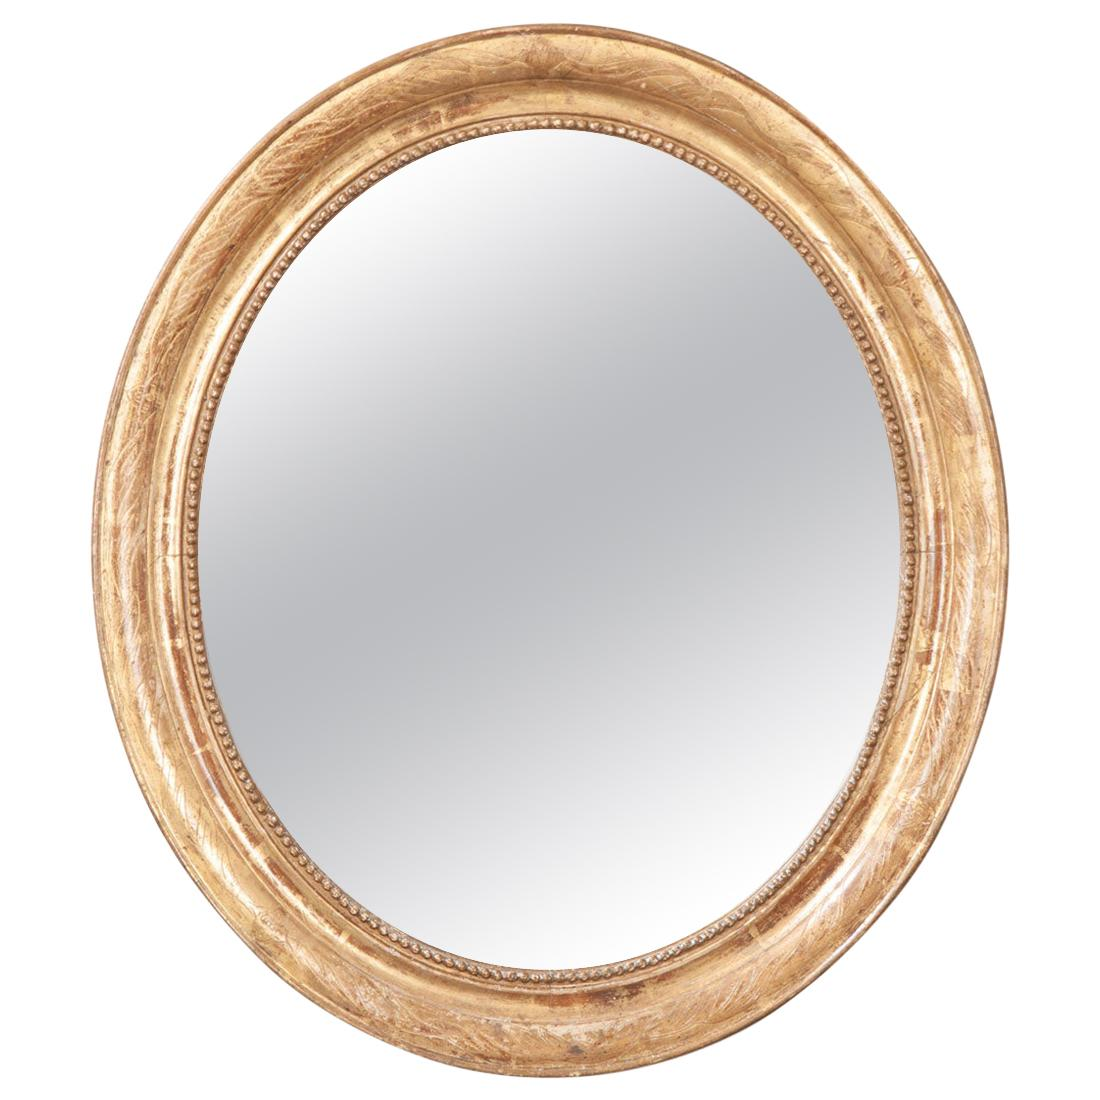 French 19th Century Giltwood Oval Mirror